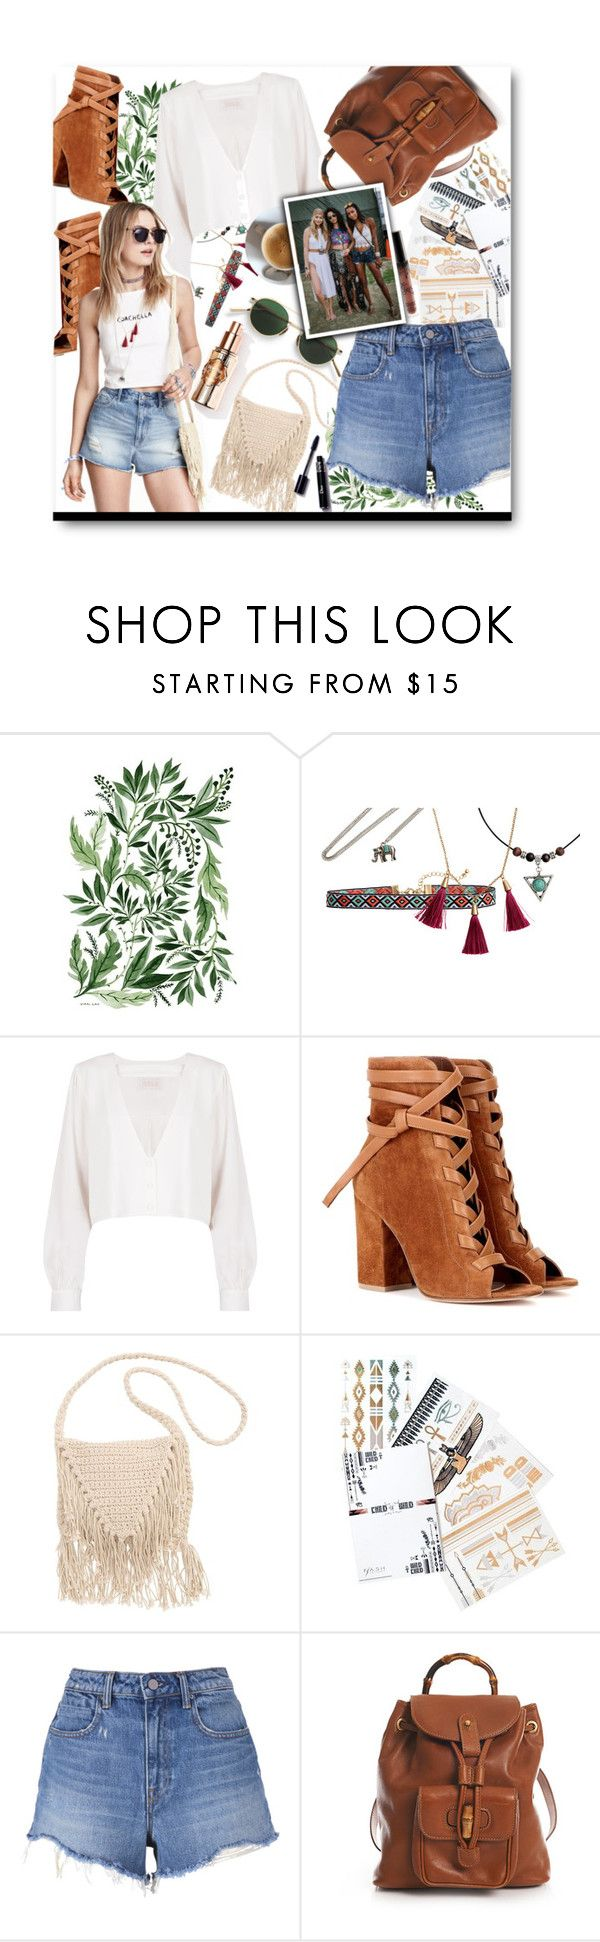 """Coachella 2016"" by voguefashion101 ❤ liked on Polyvore featuring Acne Studios, Stone_Cold_Fox, Gianvito Rossi, H&M, Billabong, Flash Tattoos, T By Alexander Wang and Gucci"